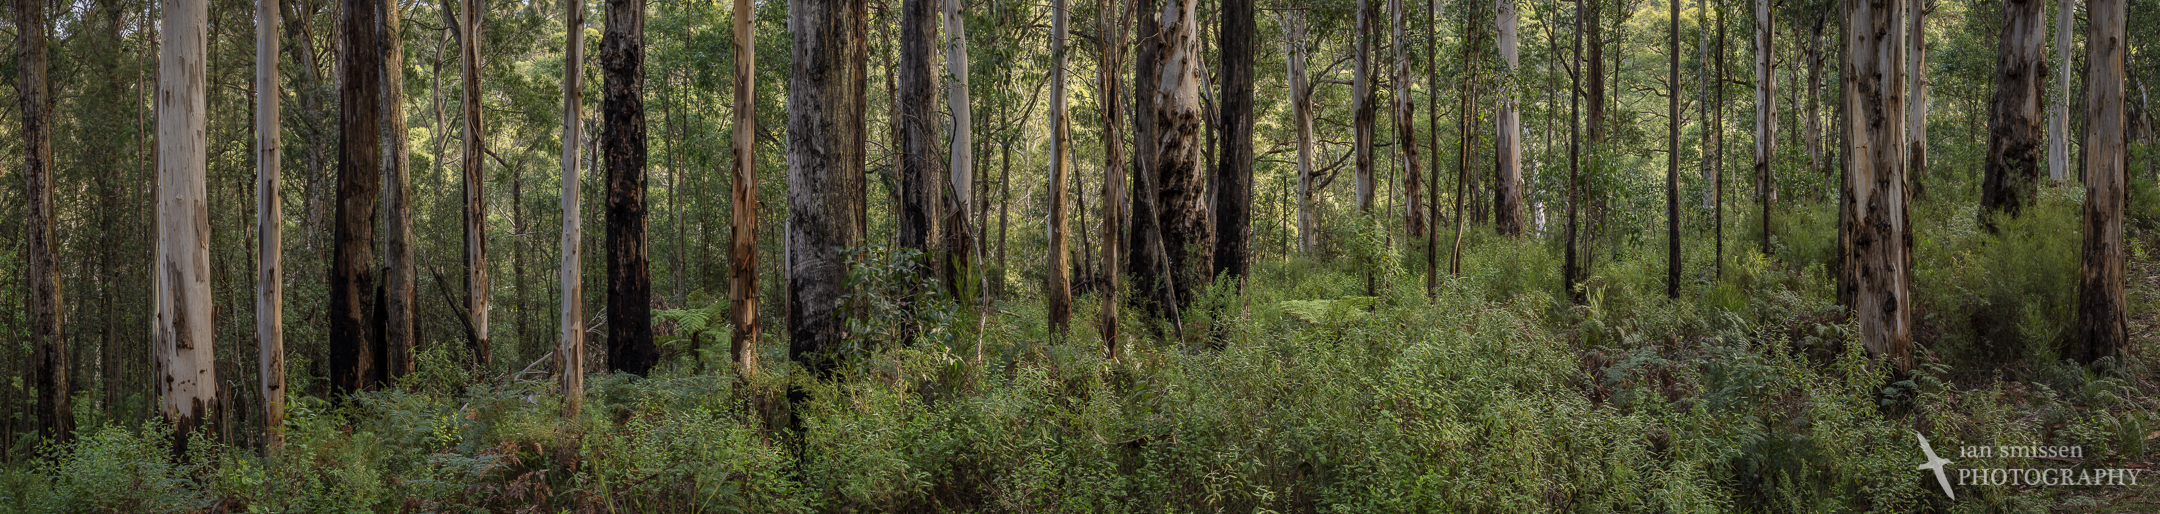 Tree trunks, Big Hill Track, Great Otway National Park, Victoria, Australia 70mm, ISO 100, 5 frame stitched panorama of 5-shot HDR 1/8 to 2 seconds @ f/16